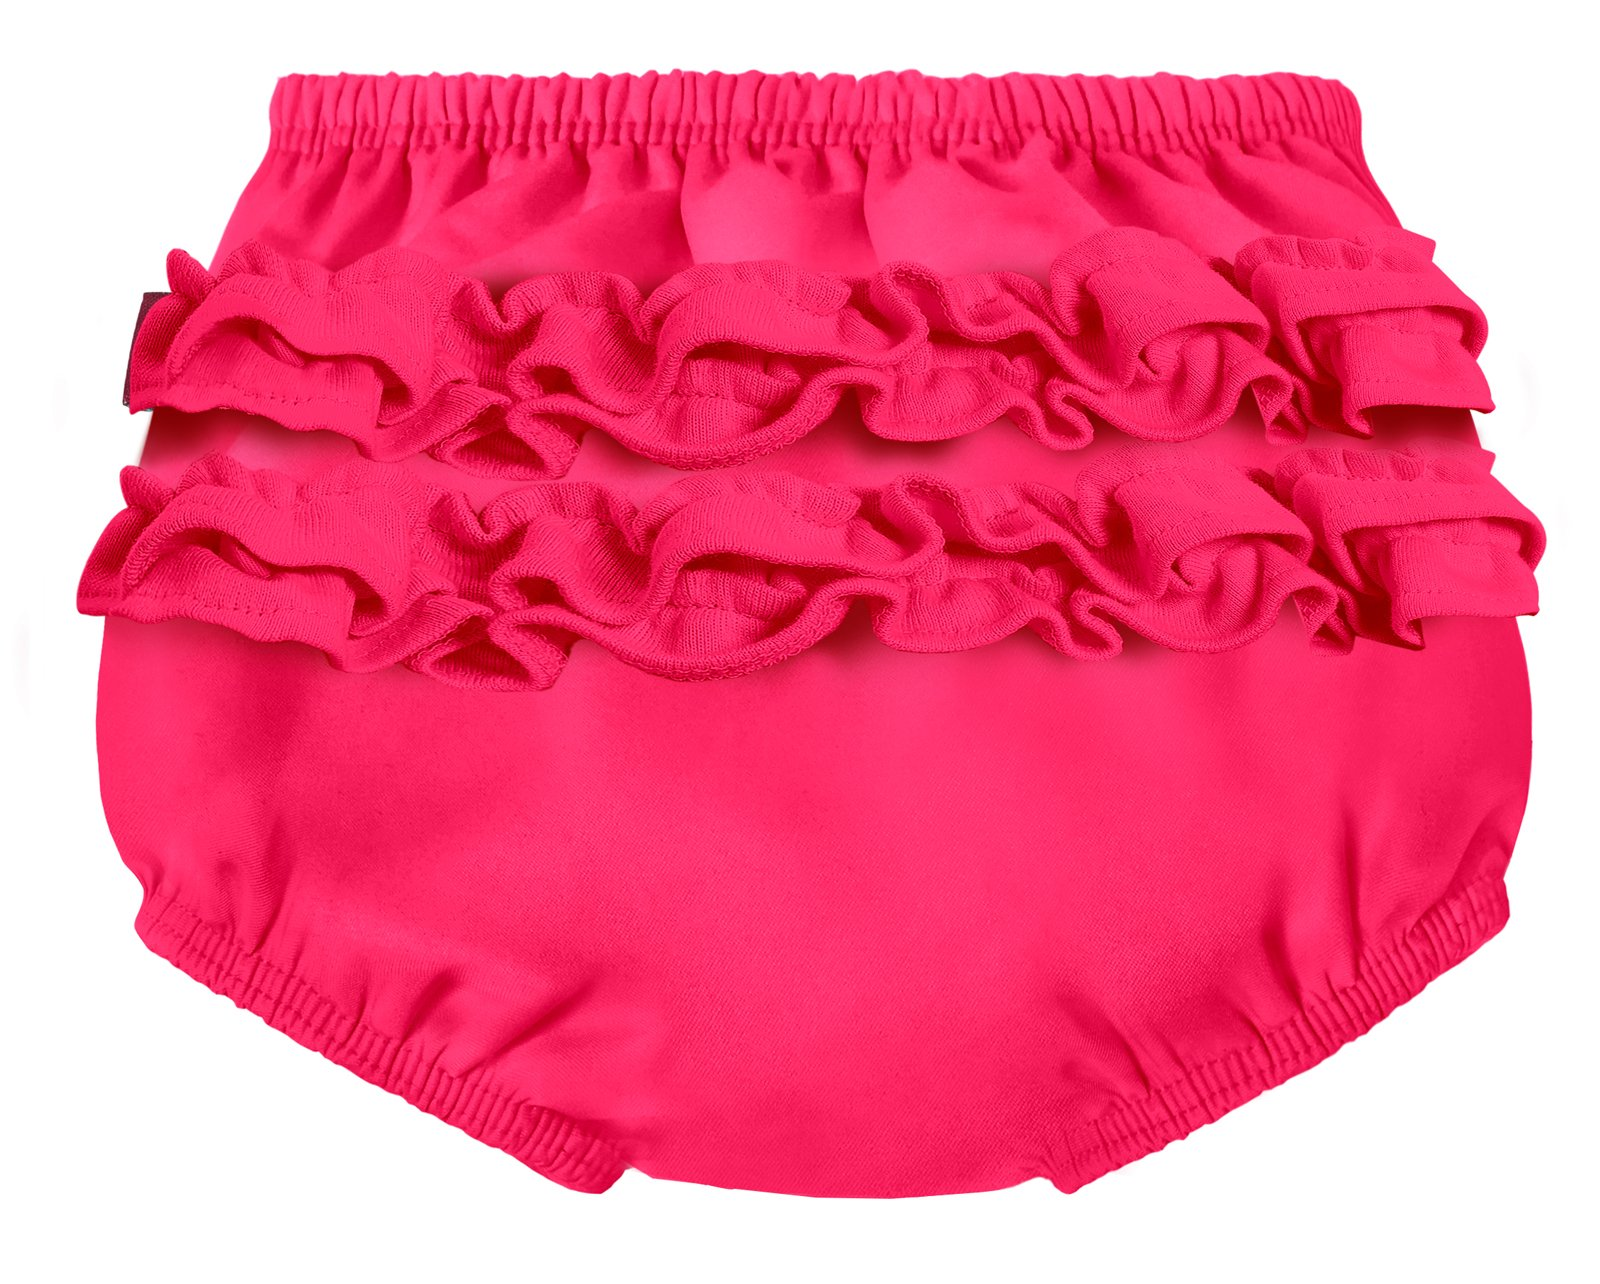 City Threads Baby Girls' Ruffle Swim Diaper Cover Reusable Leakproof for Swimming Pool Lessons Beach, Hot Pink, 12/18m